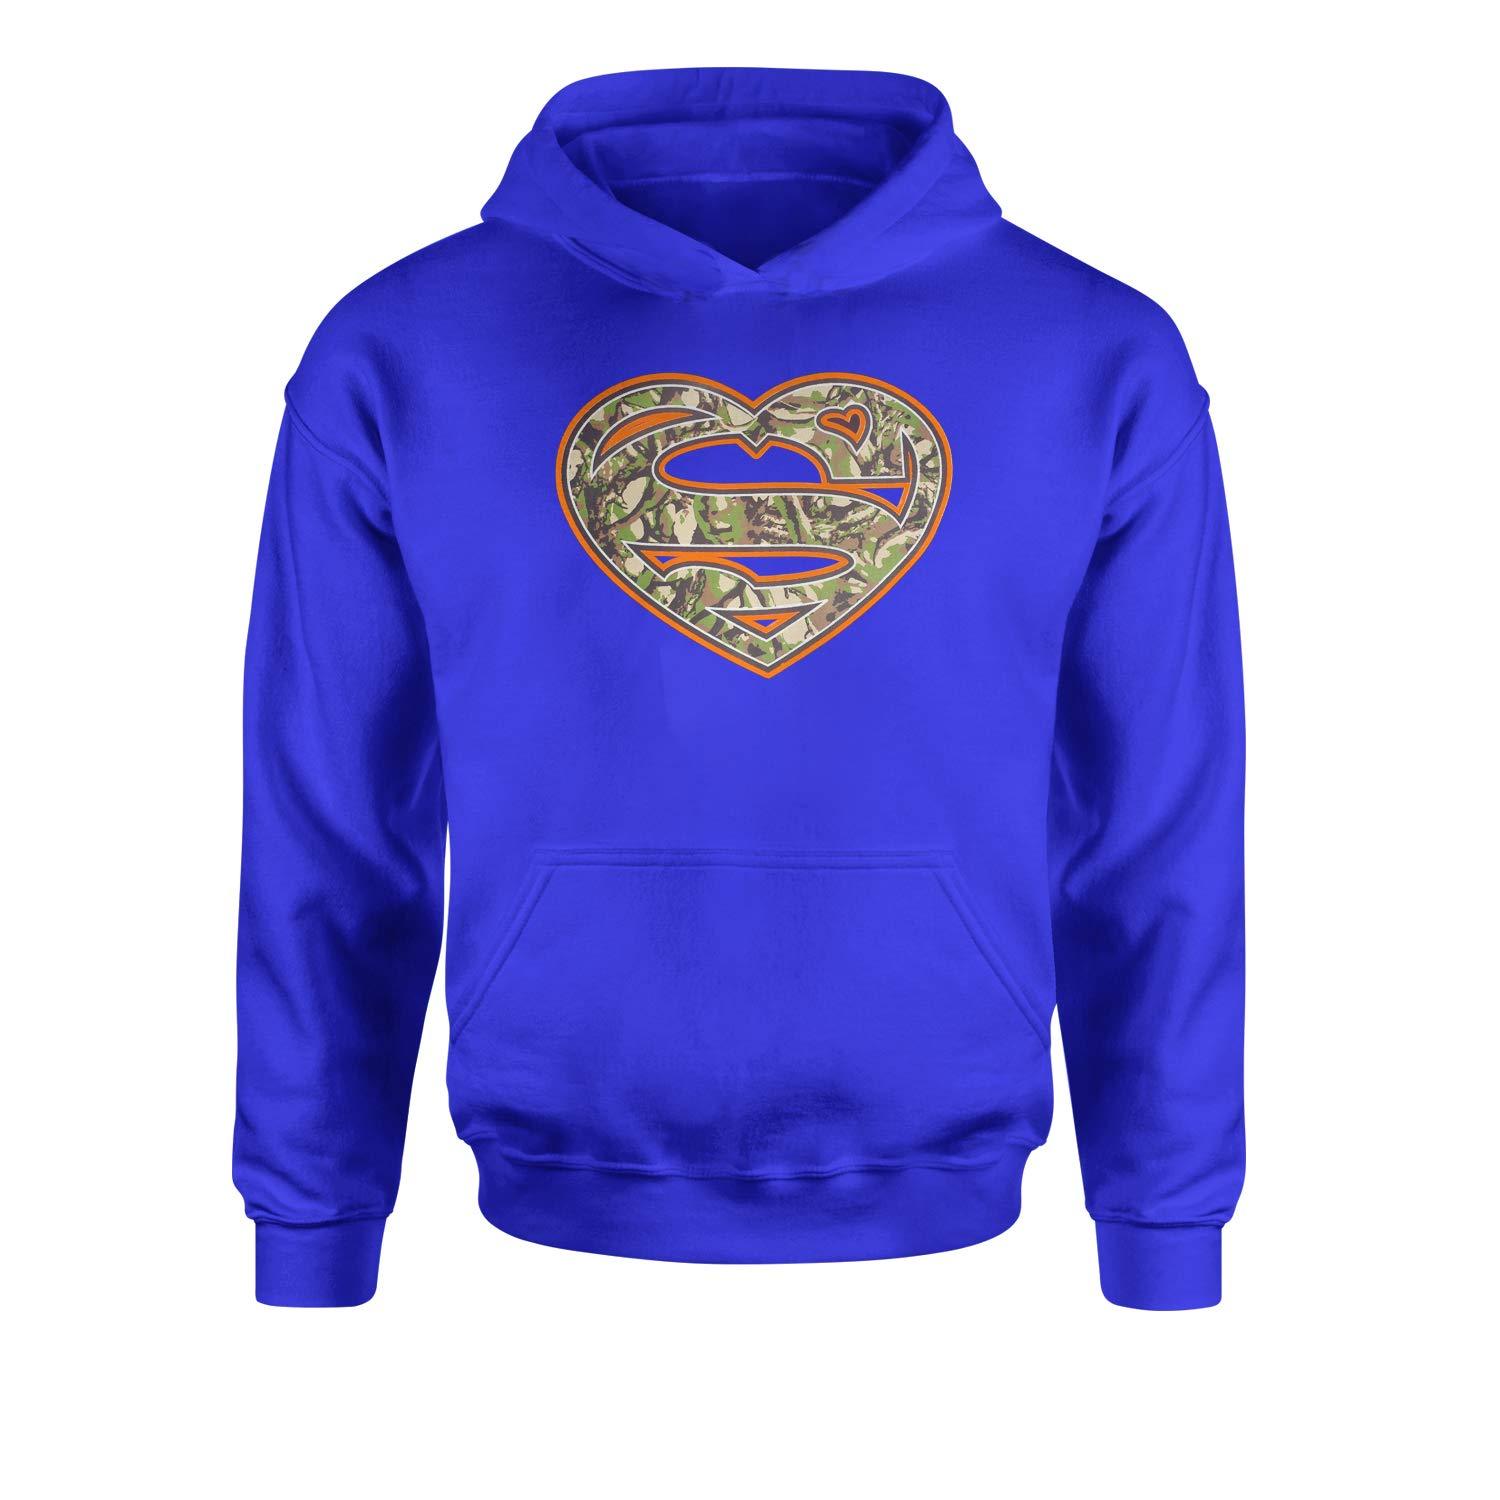 Expression Tees Super Camouflage Heart Youth-Sized Hoodie